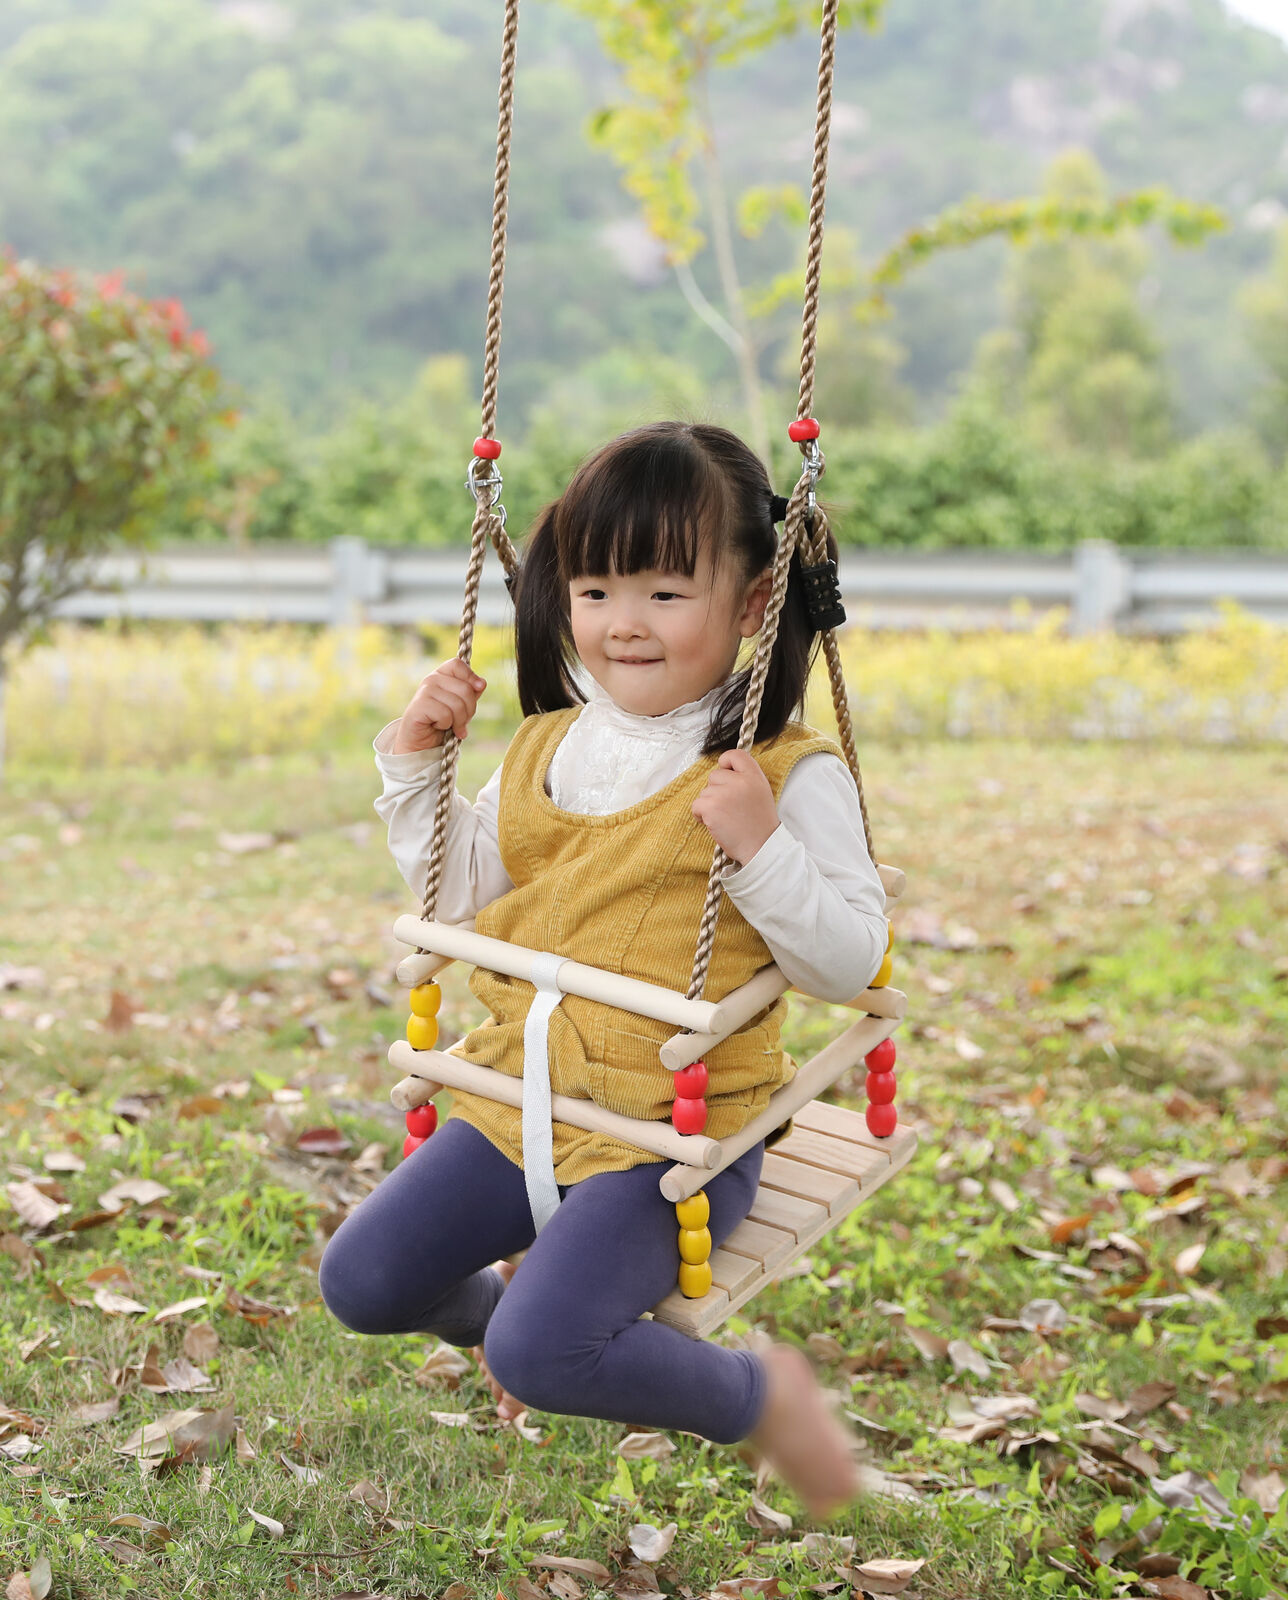 New New New PLAYBERG Wooden Baby Swing with Hanging Ropes, for Babies and Toddlers 75ff68